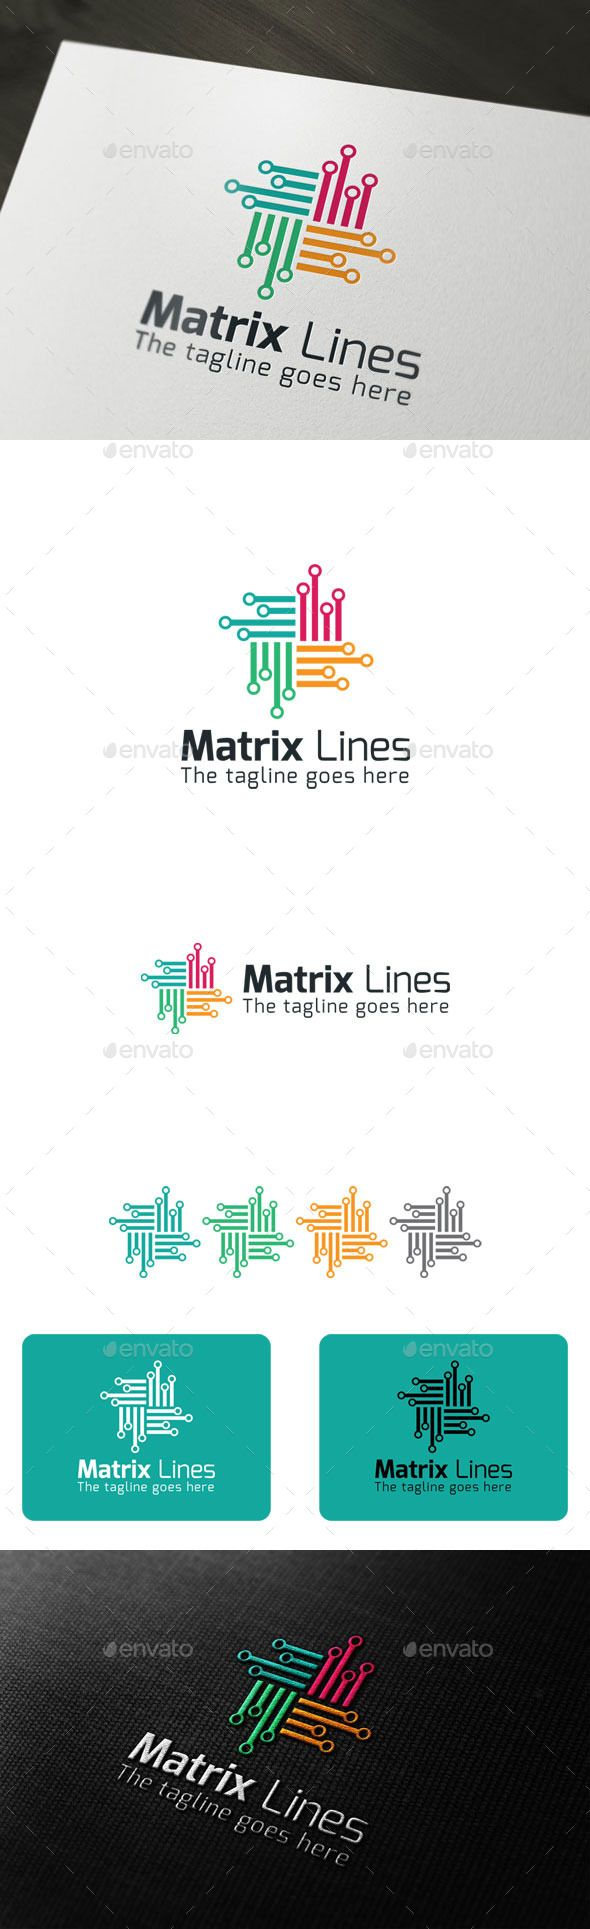 Matrix Lines - Logo Design Template Vector #logotype Download it here: http://graphicriver.net/item/matrix-lines/9700894?s_rank=1494?ref=nexion